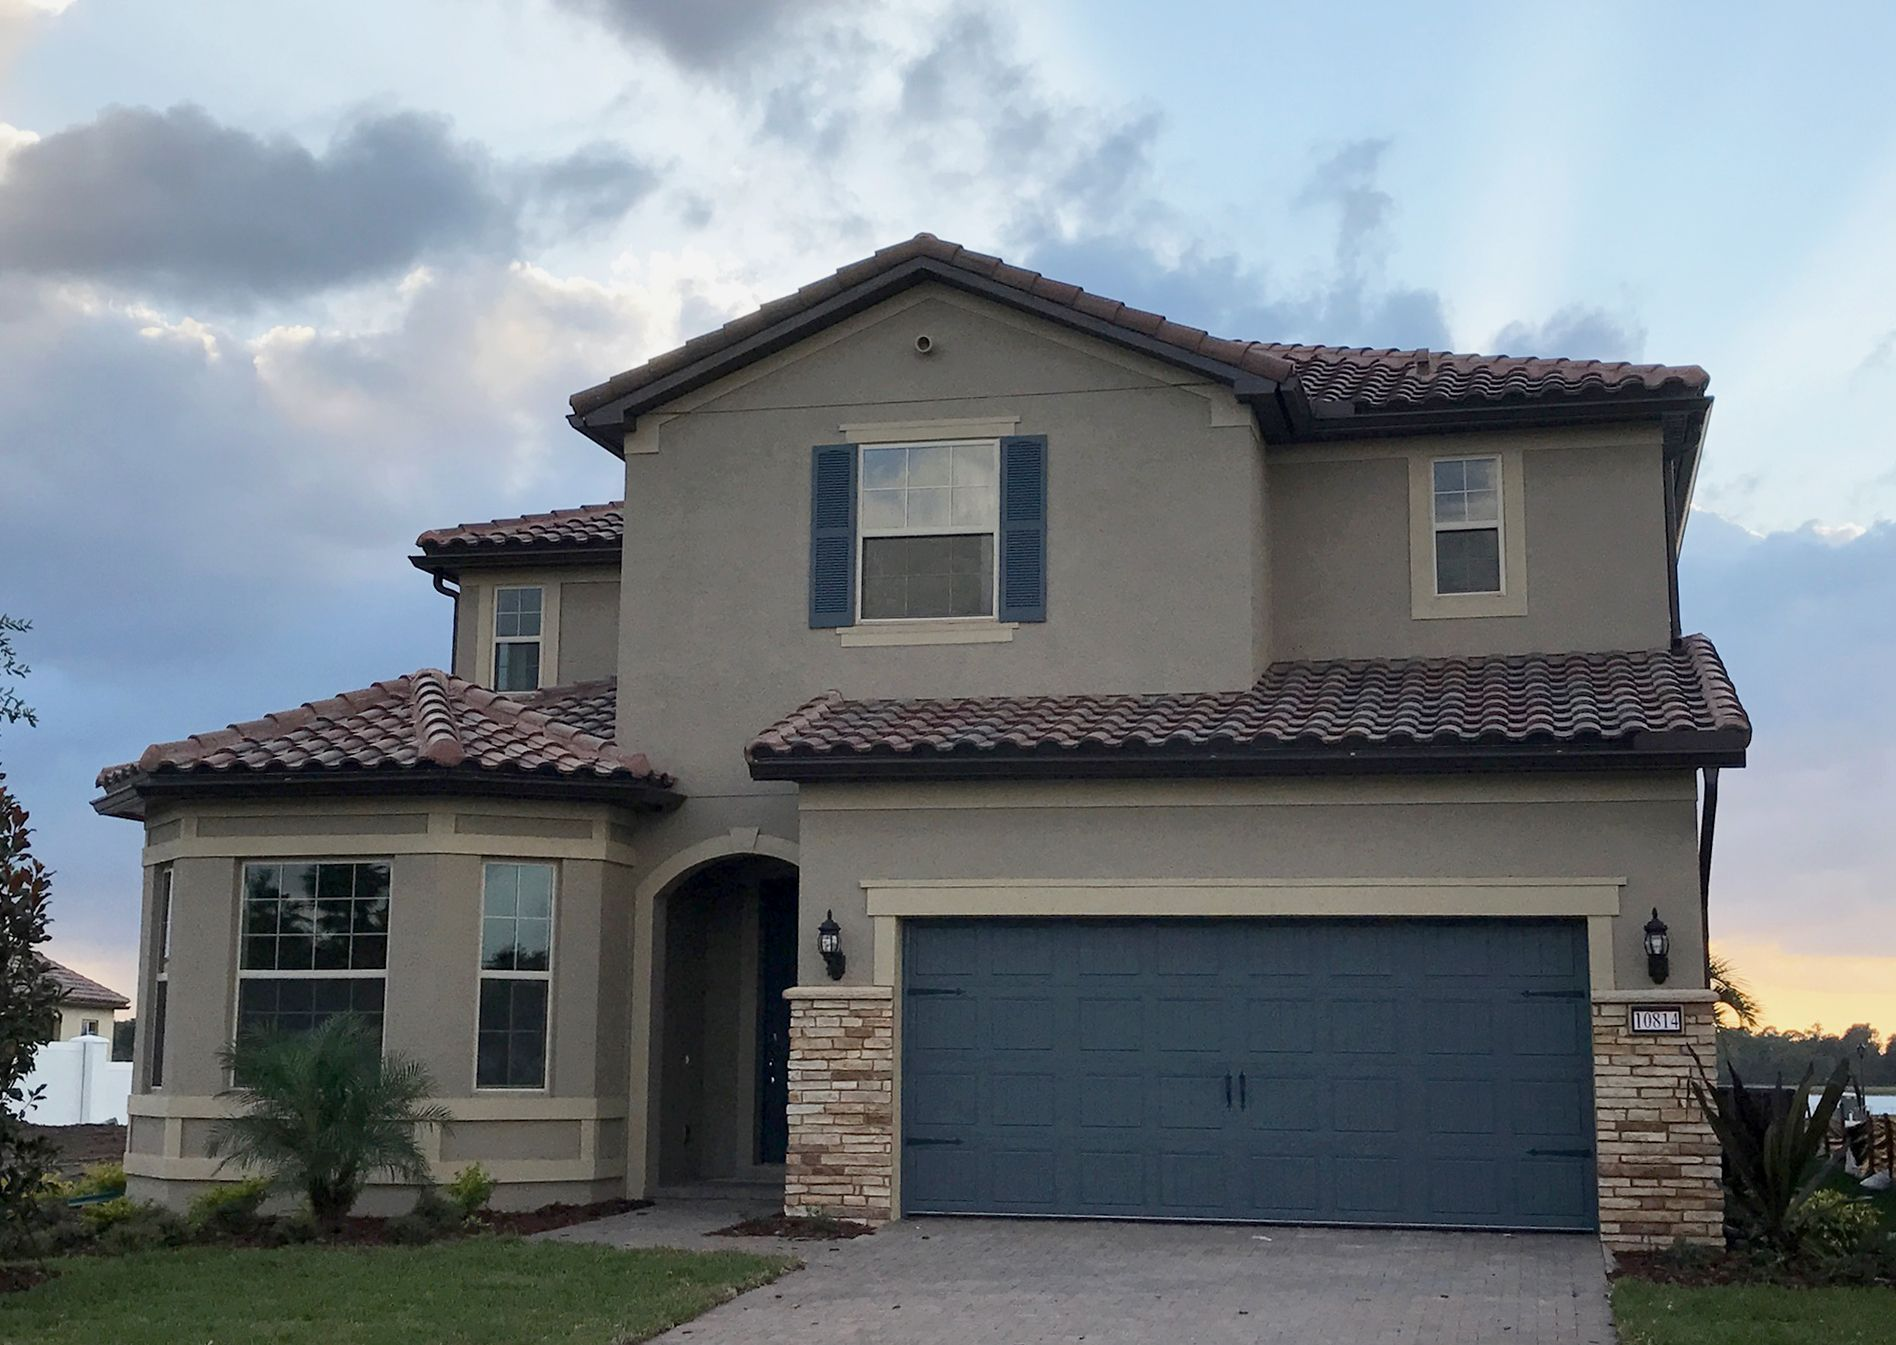 Stunning Tile Roof Projects In The Pulte Homes Community Of Ruby Lakes Located In Orlando Fl Pulte Homes House Styles Central Florida